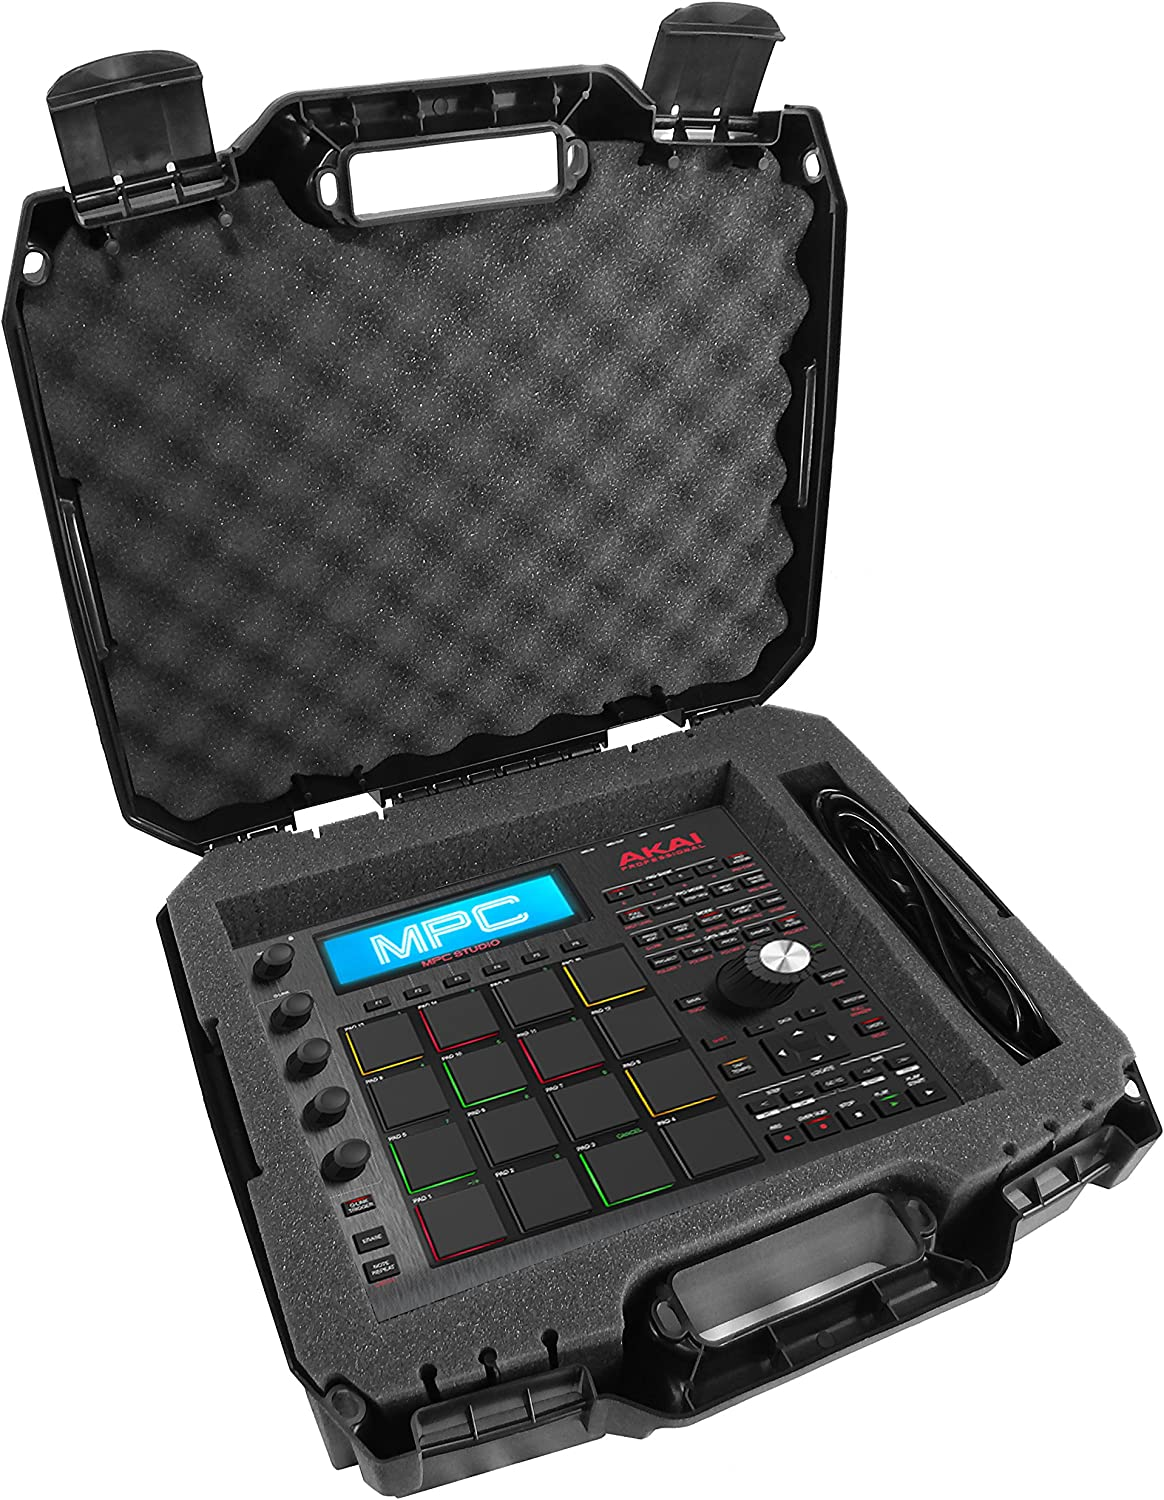 armorxl Carrying Case 17